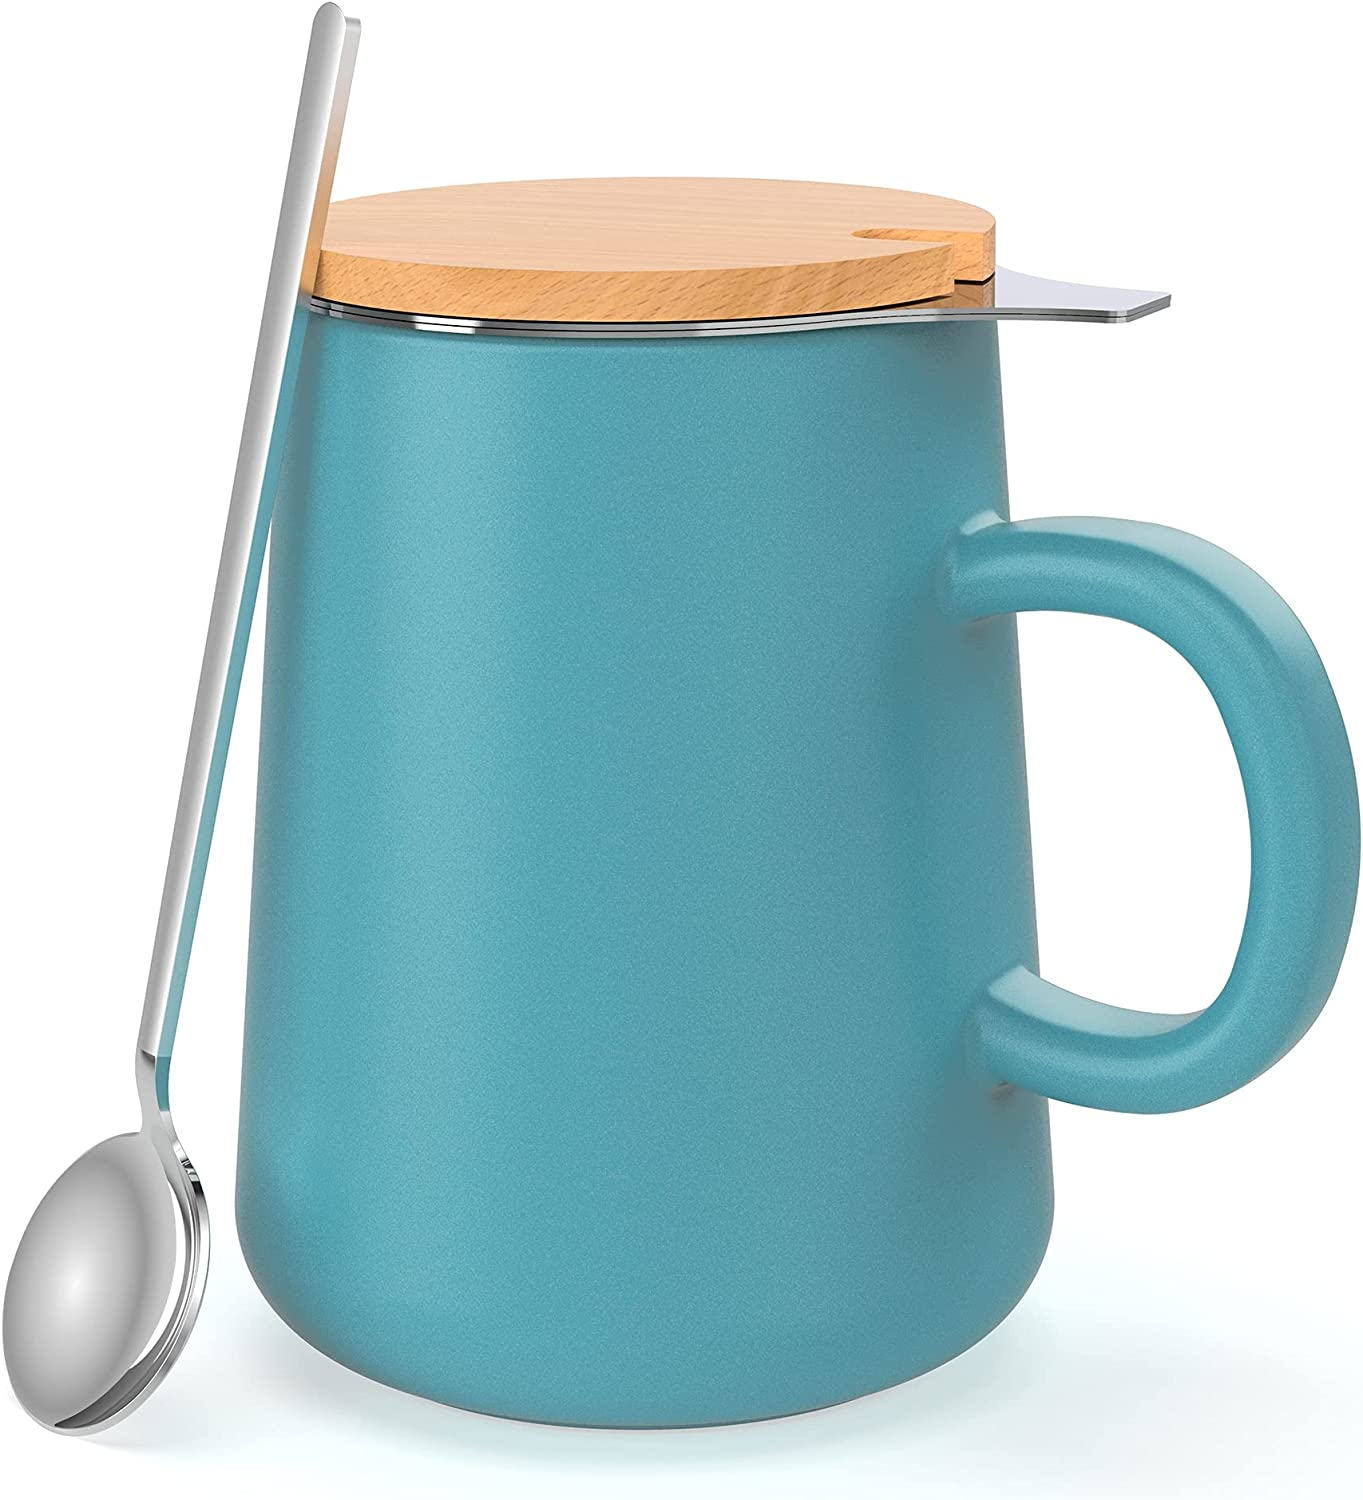 J-FAMILY Porcelain Tea Inventory cleanup selling outlet sale Mug with Lid Steepe Infuser Loose and